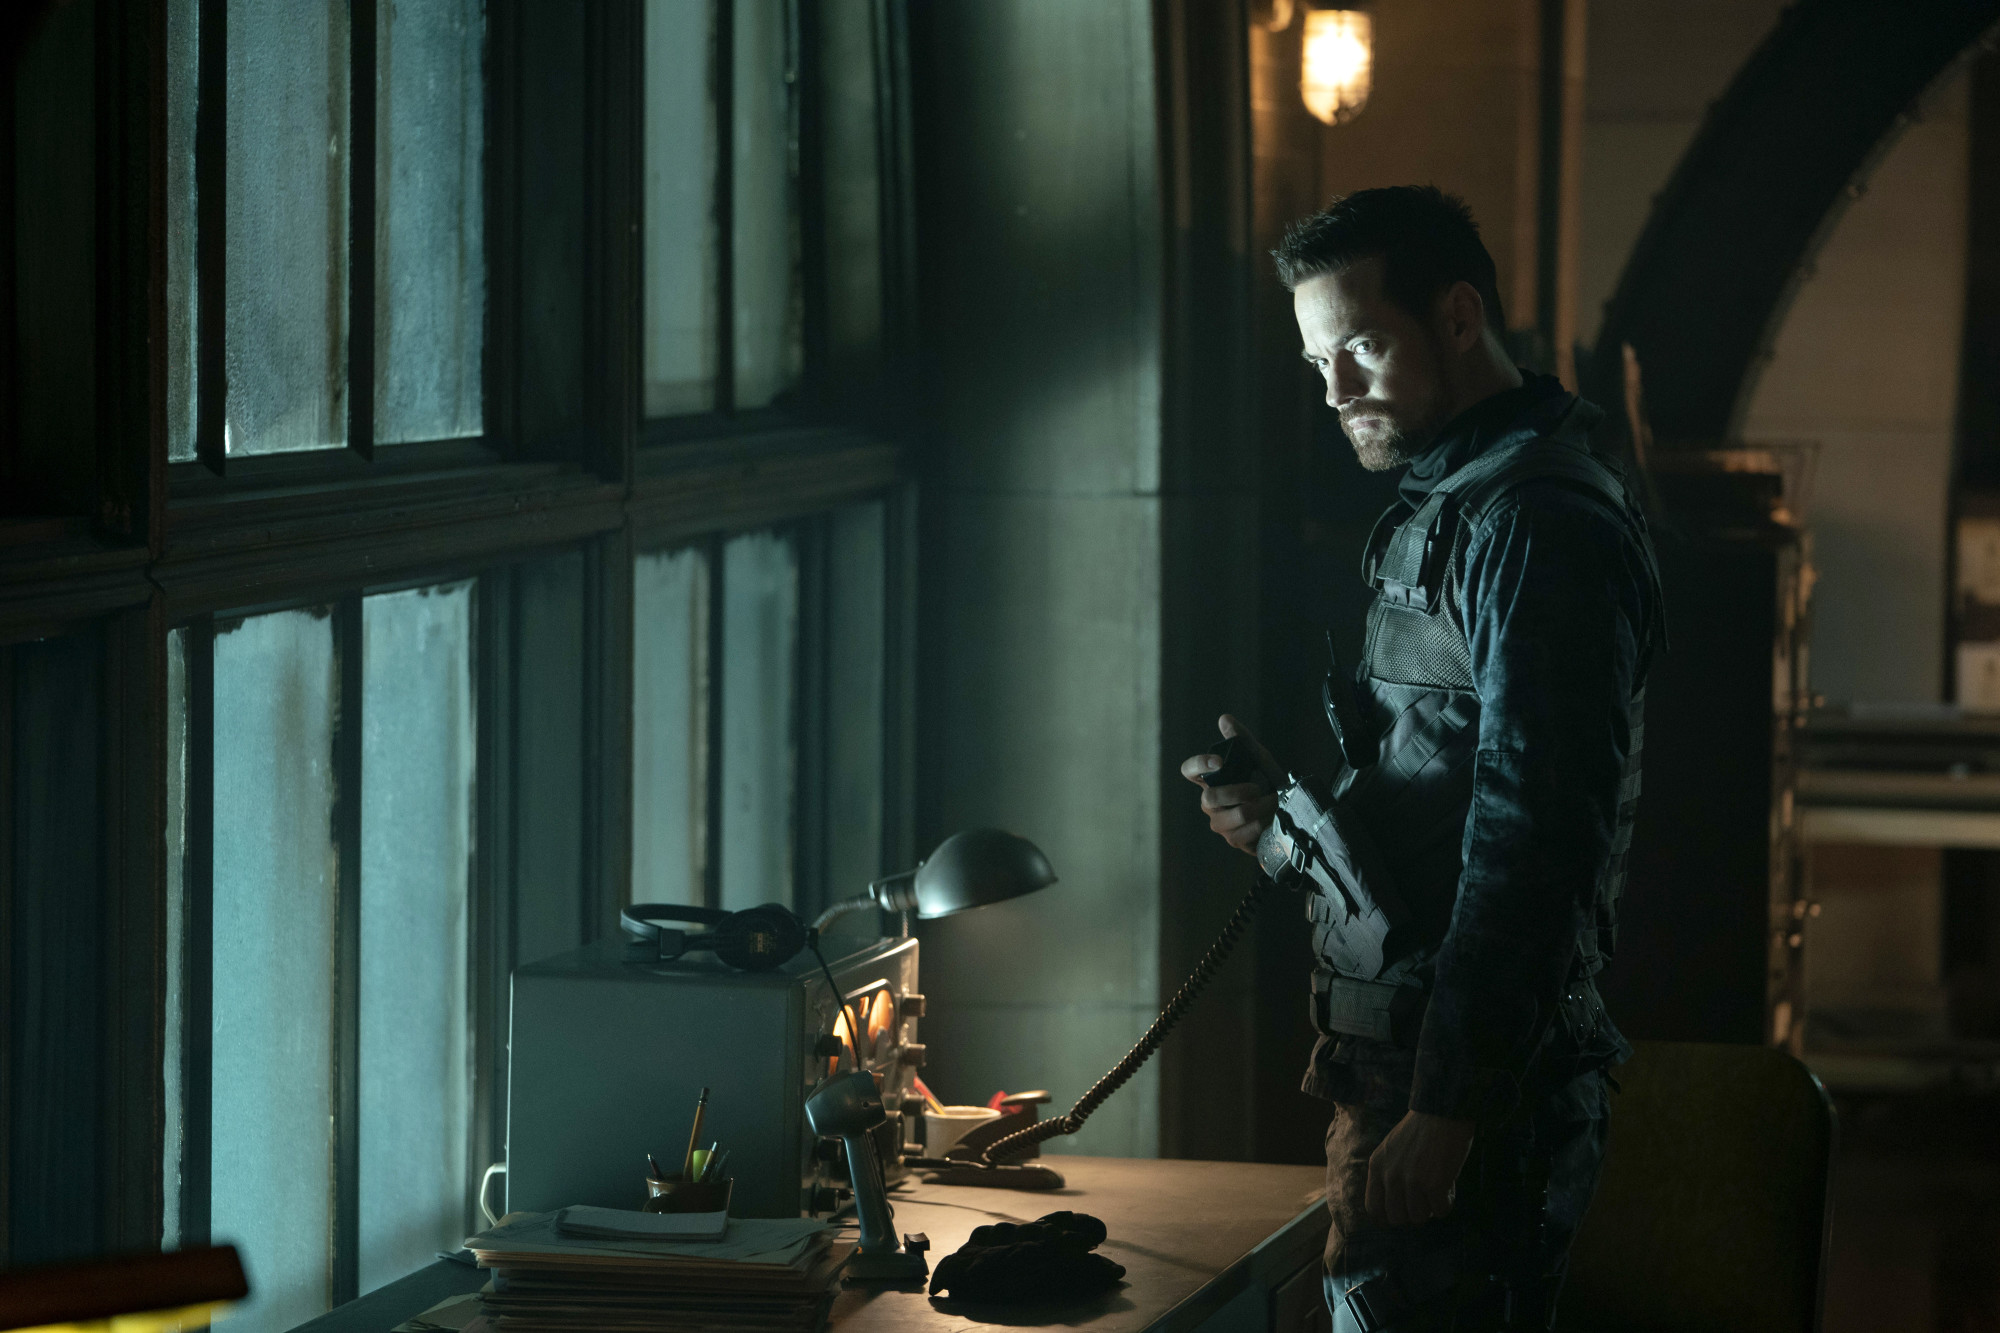 """GOTHAM: Shane West in the """"13 Stitches"""" episode of GOTHAM airing Thursday, Feb. 14 (8:00-9:00 PM ET/PT) on FOX. ©2019 Fox Broadcasting Co. Cr: FOX"""